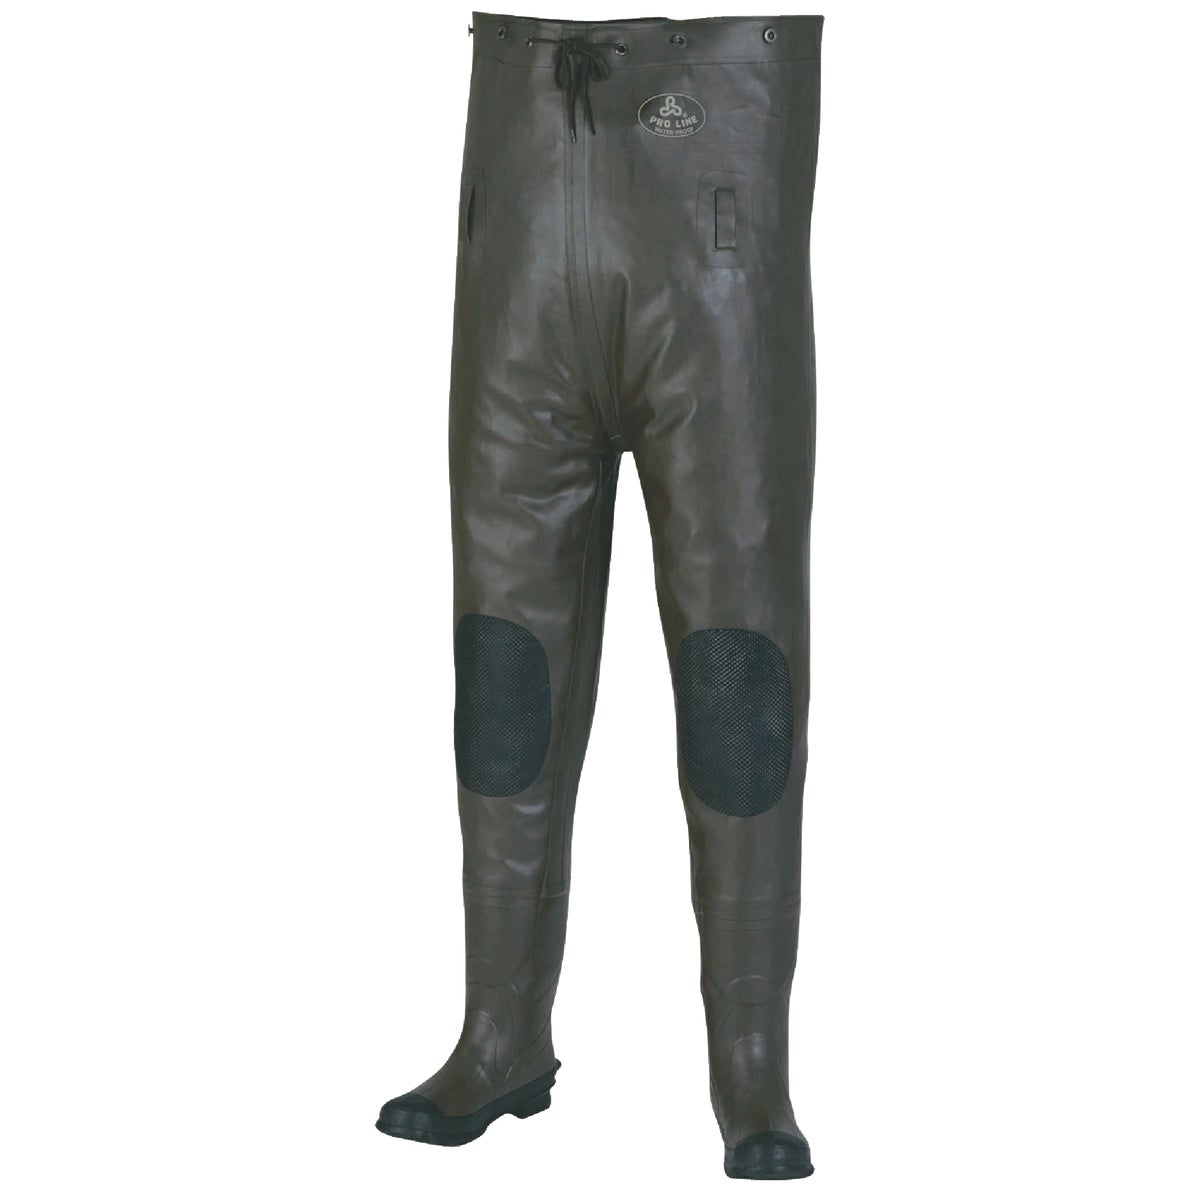 SZ 12 CHEST WADER - 2012-12 by Pro Line Mfg Co